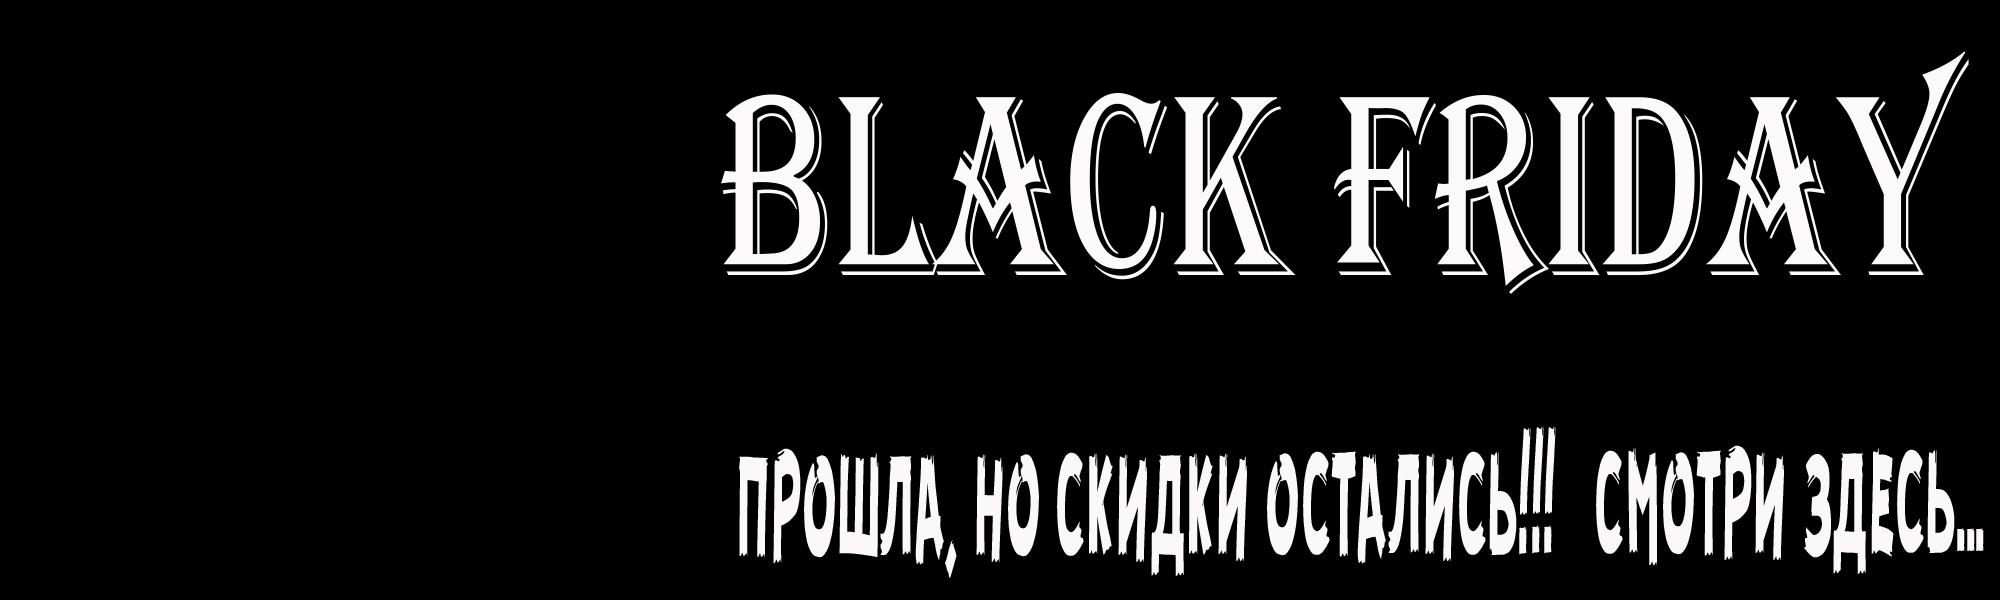 BLACK_FRIDAY-2000x600